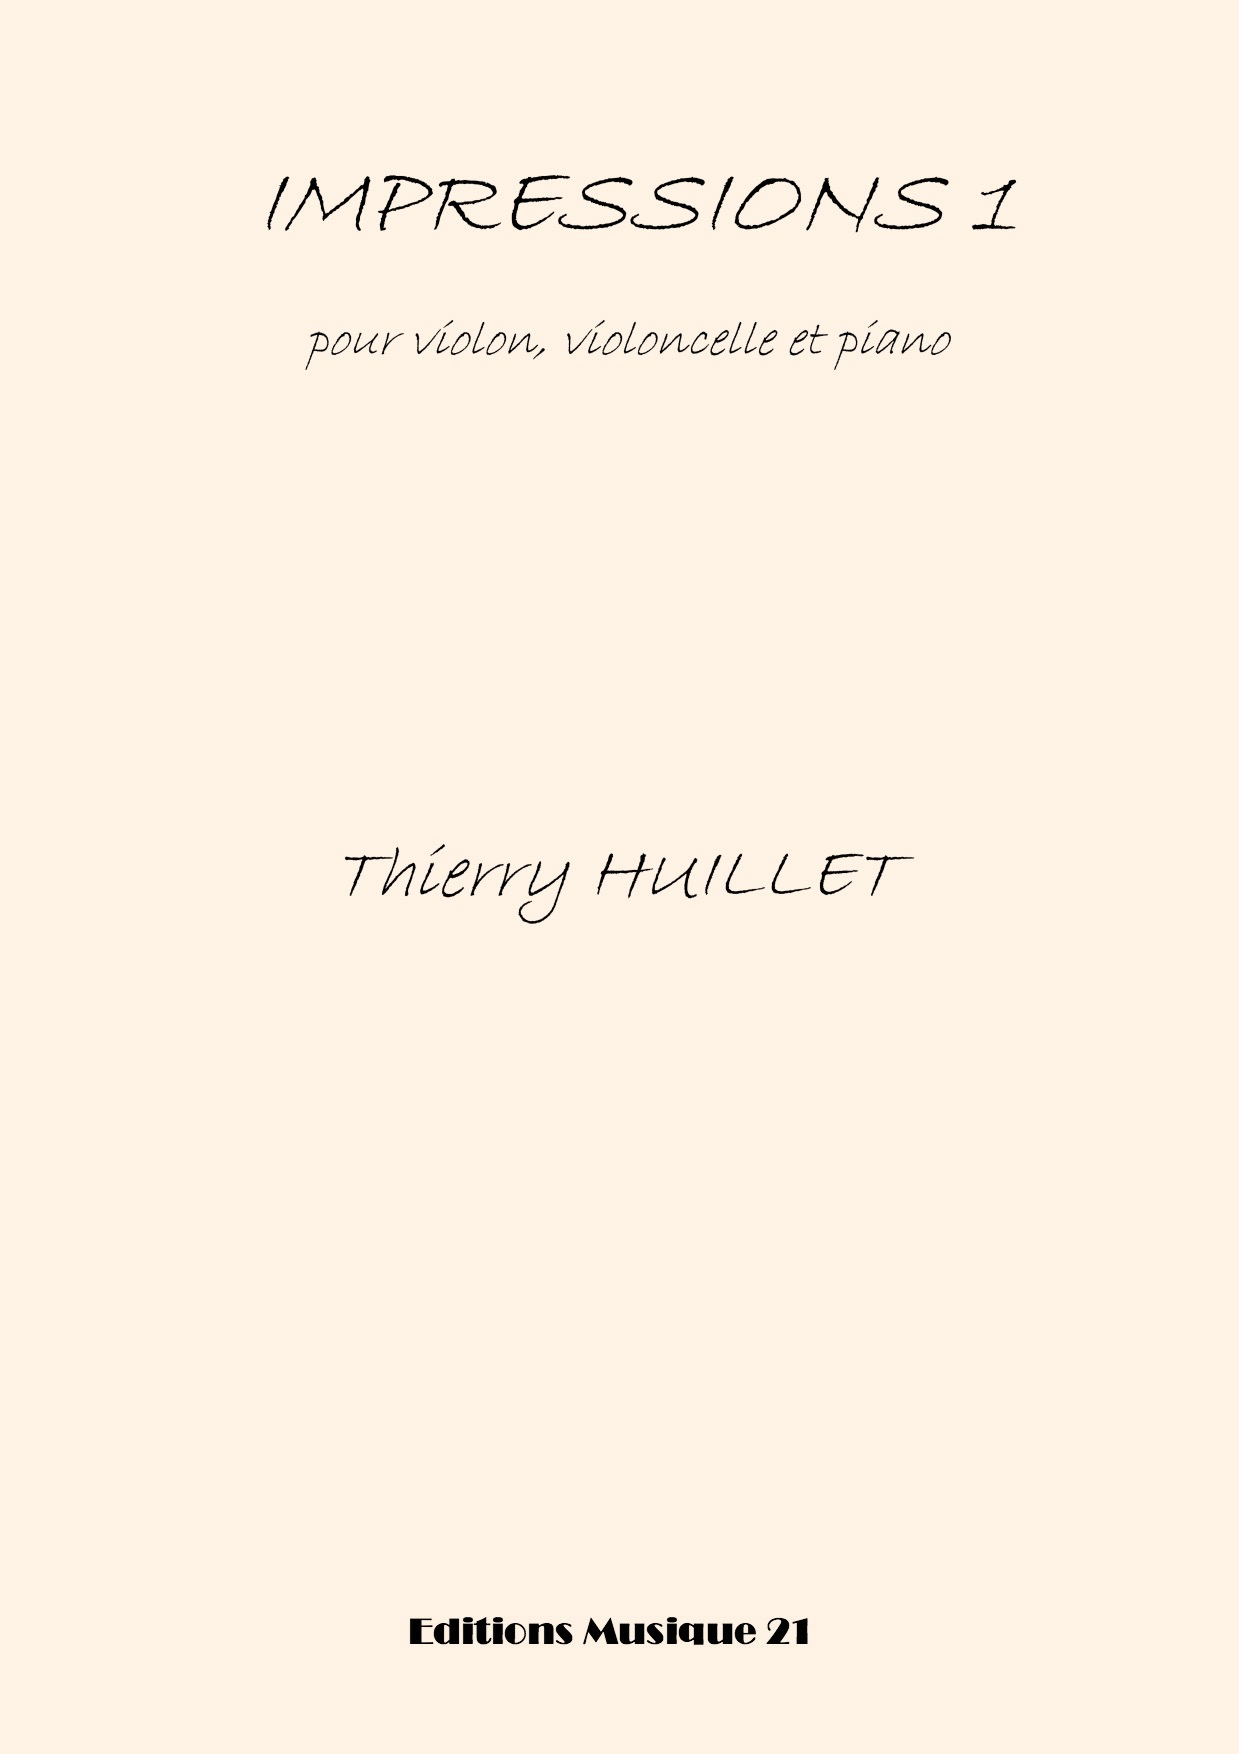 Thierry HUILLET – Impressions 1 For Violin, Cello And Piano